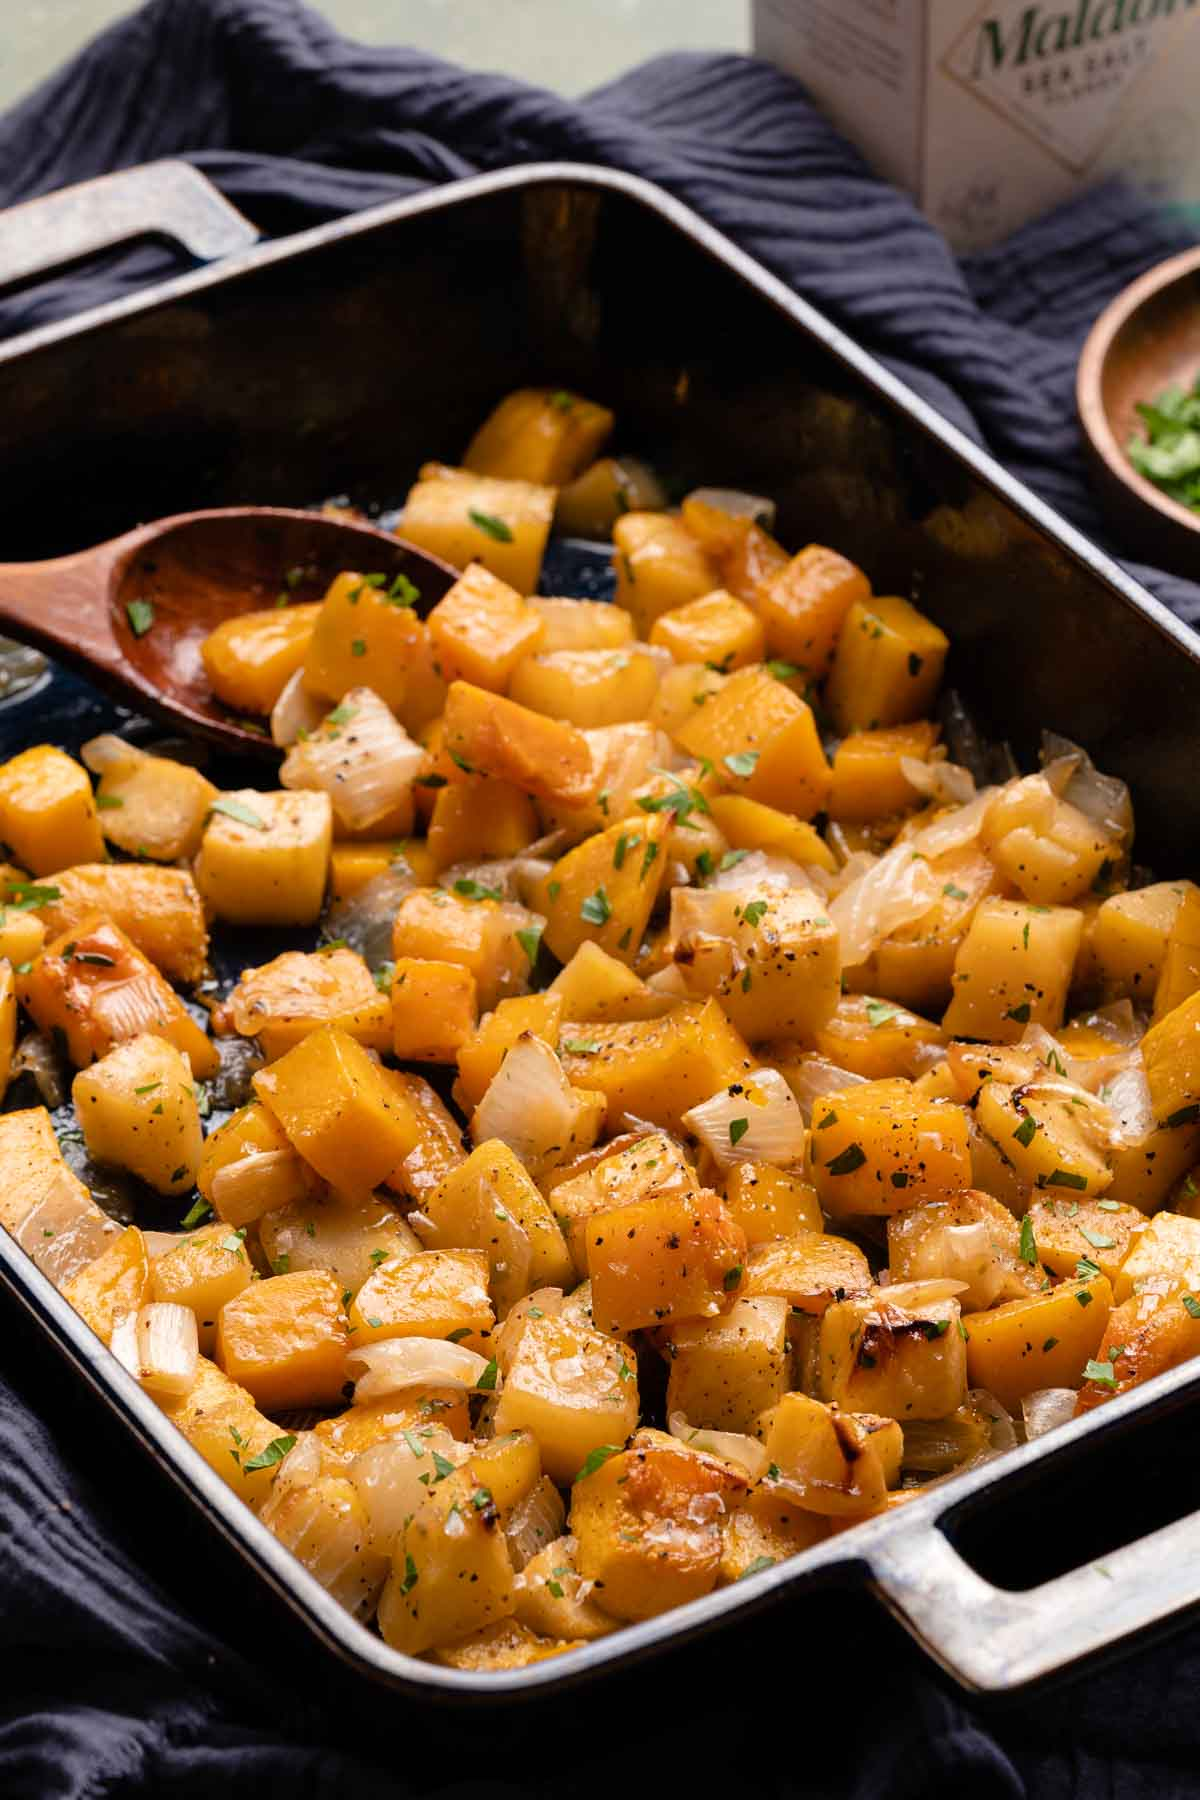 squash and apples in blue casserole dish with herbs on the side